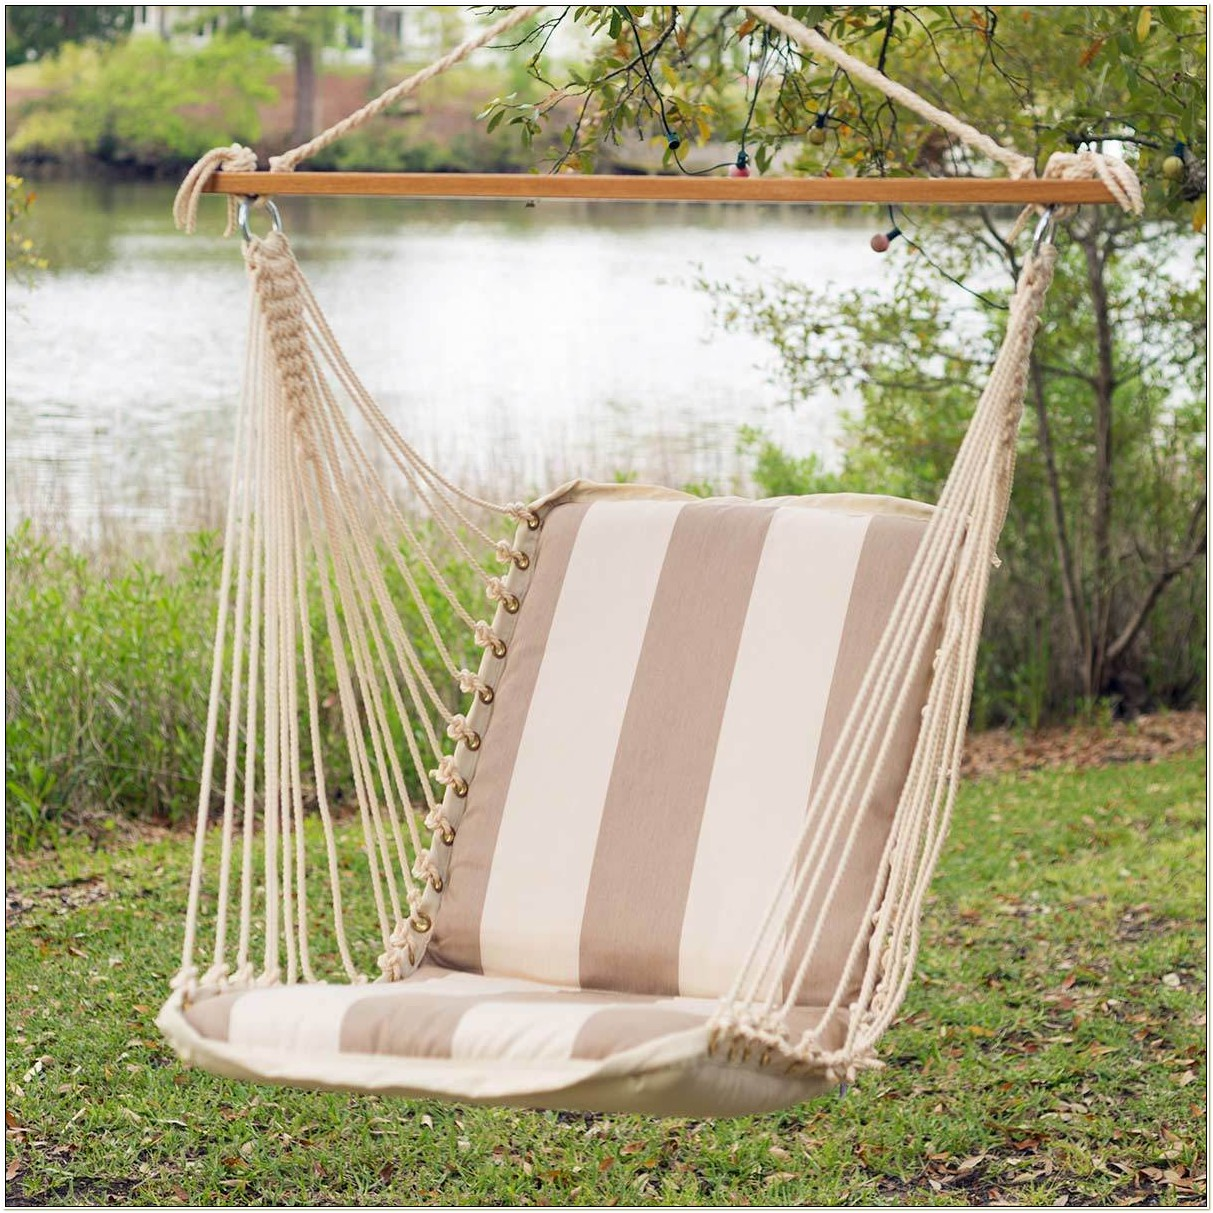 Pawleys Island Hammock Chairs